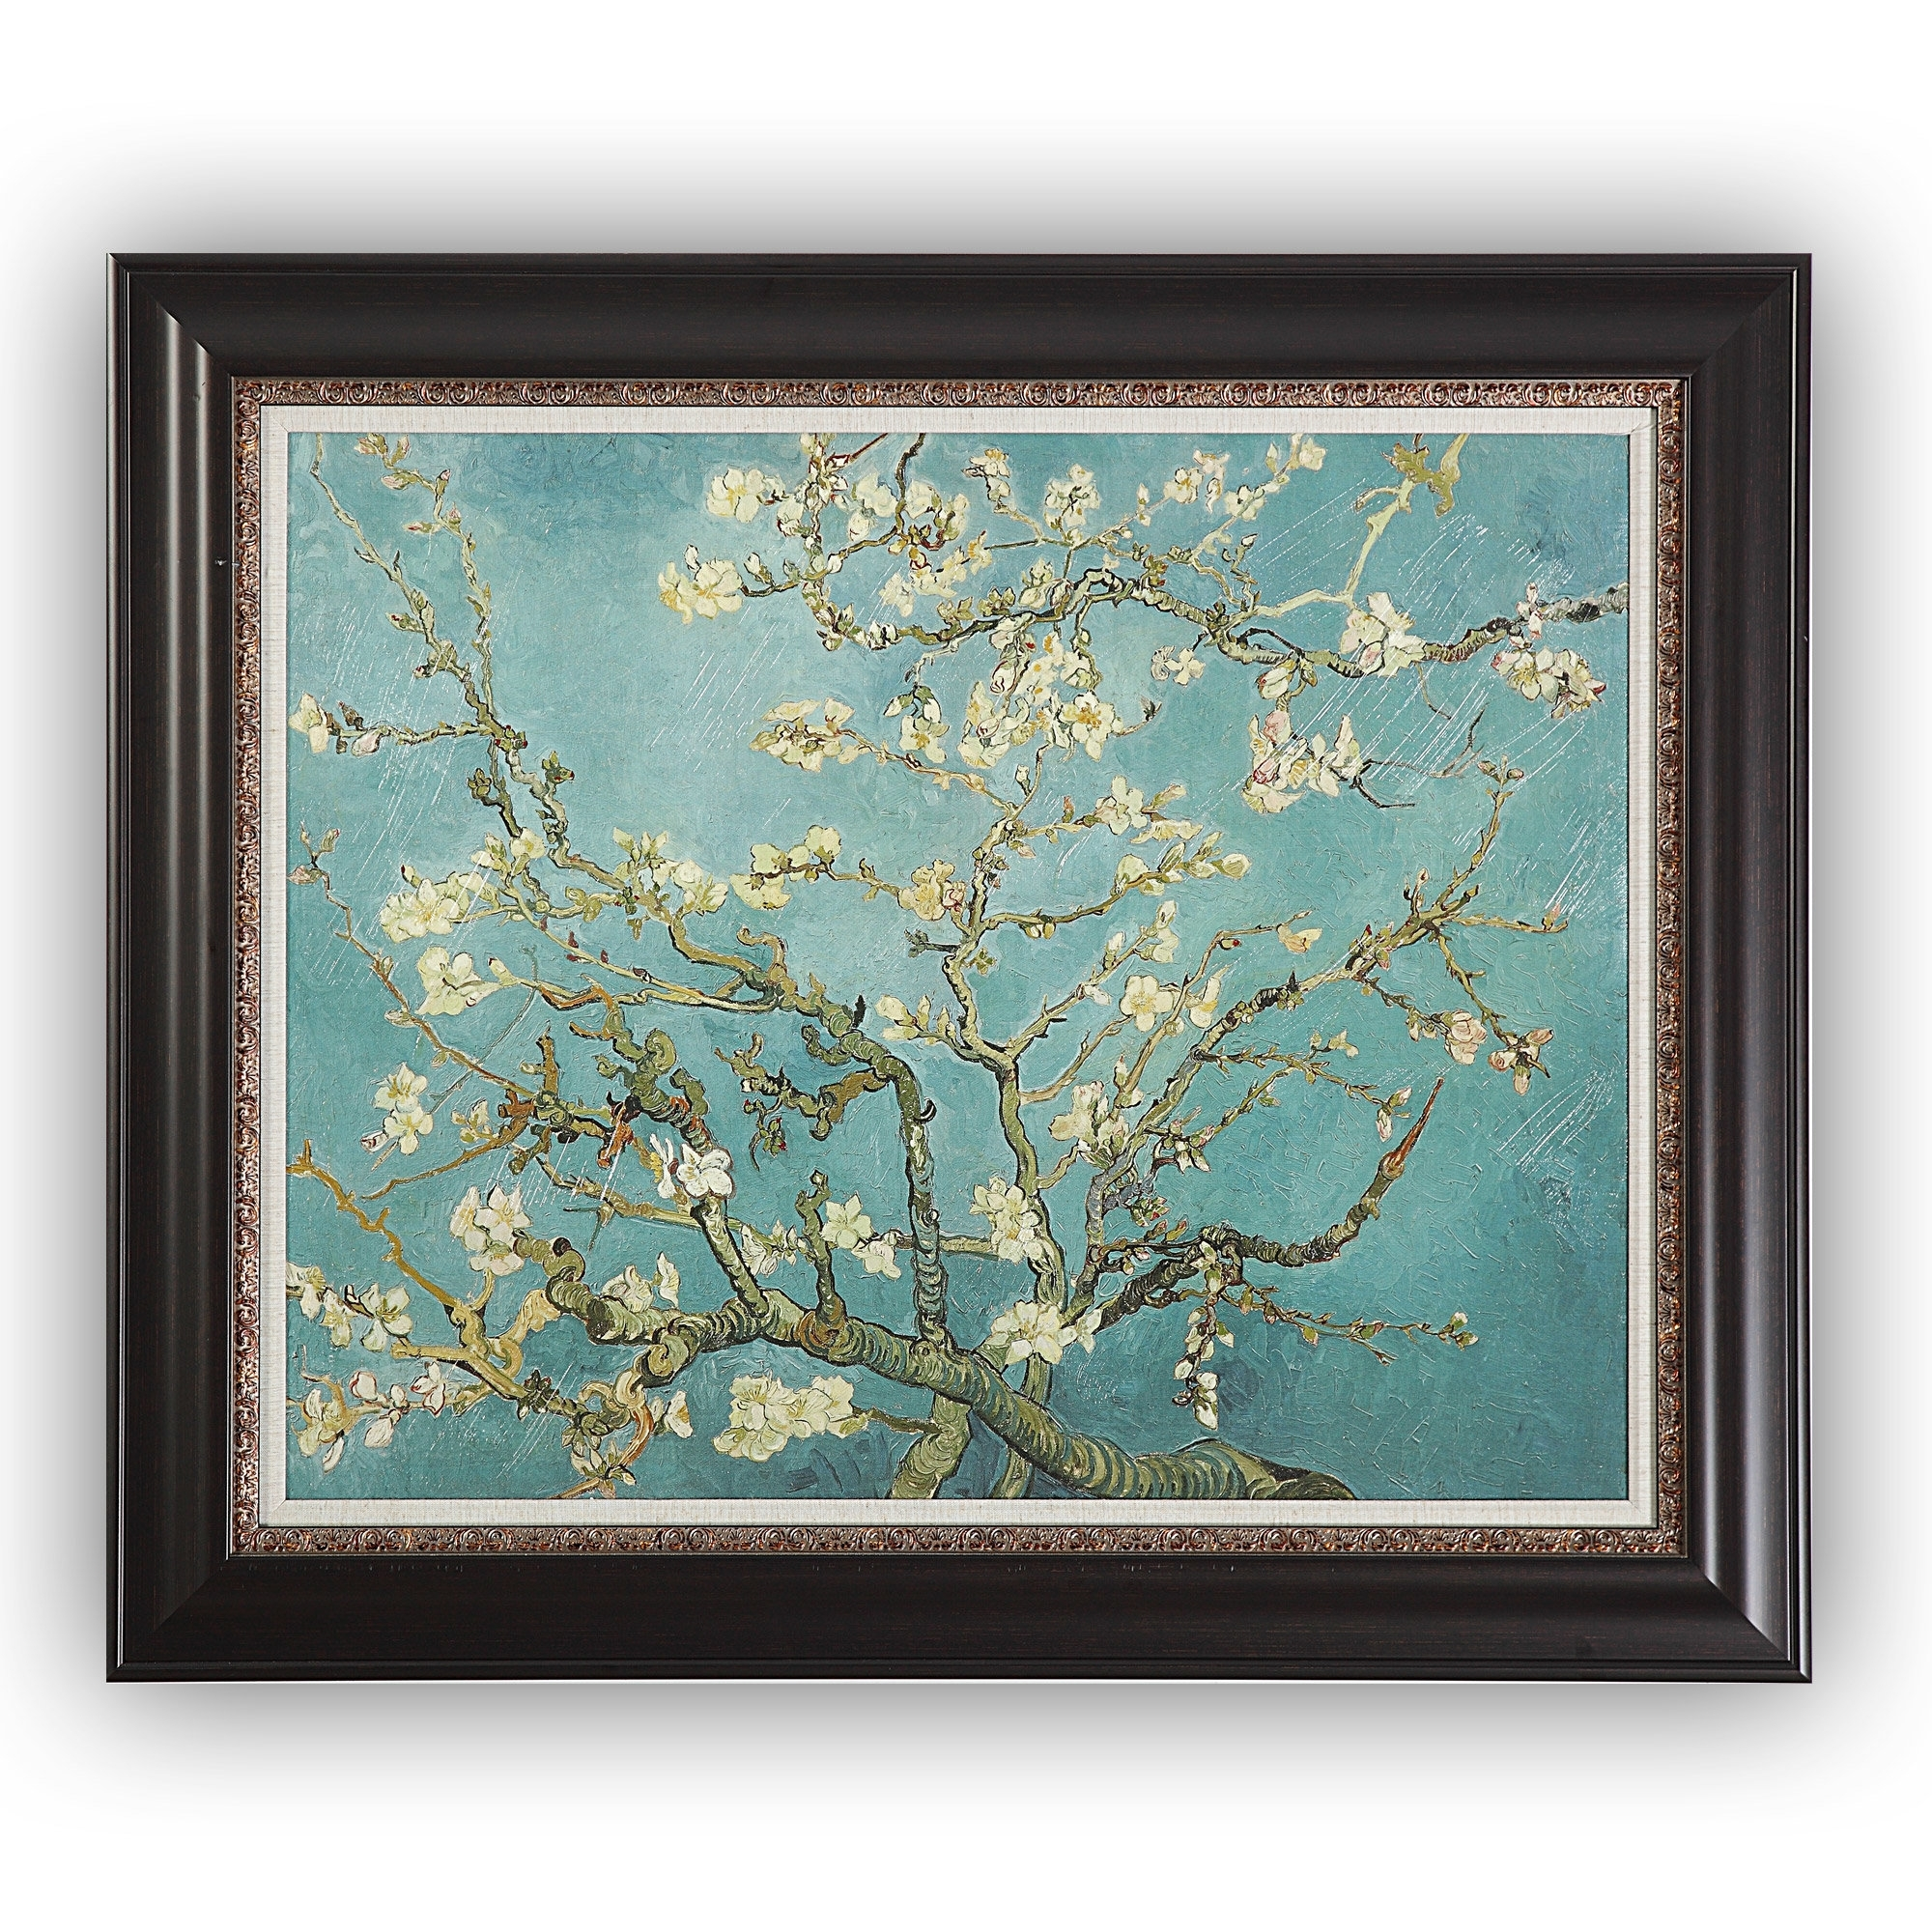 Almond Blossom'vincent Van Gogh Framed Painting Print For Current Almond Blossoms Vincent Van Gogh Wall Art (View 6 of 20)